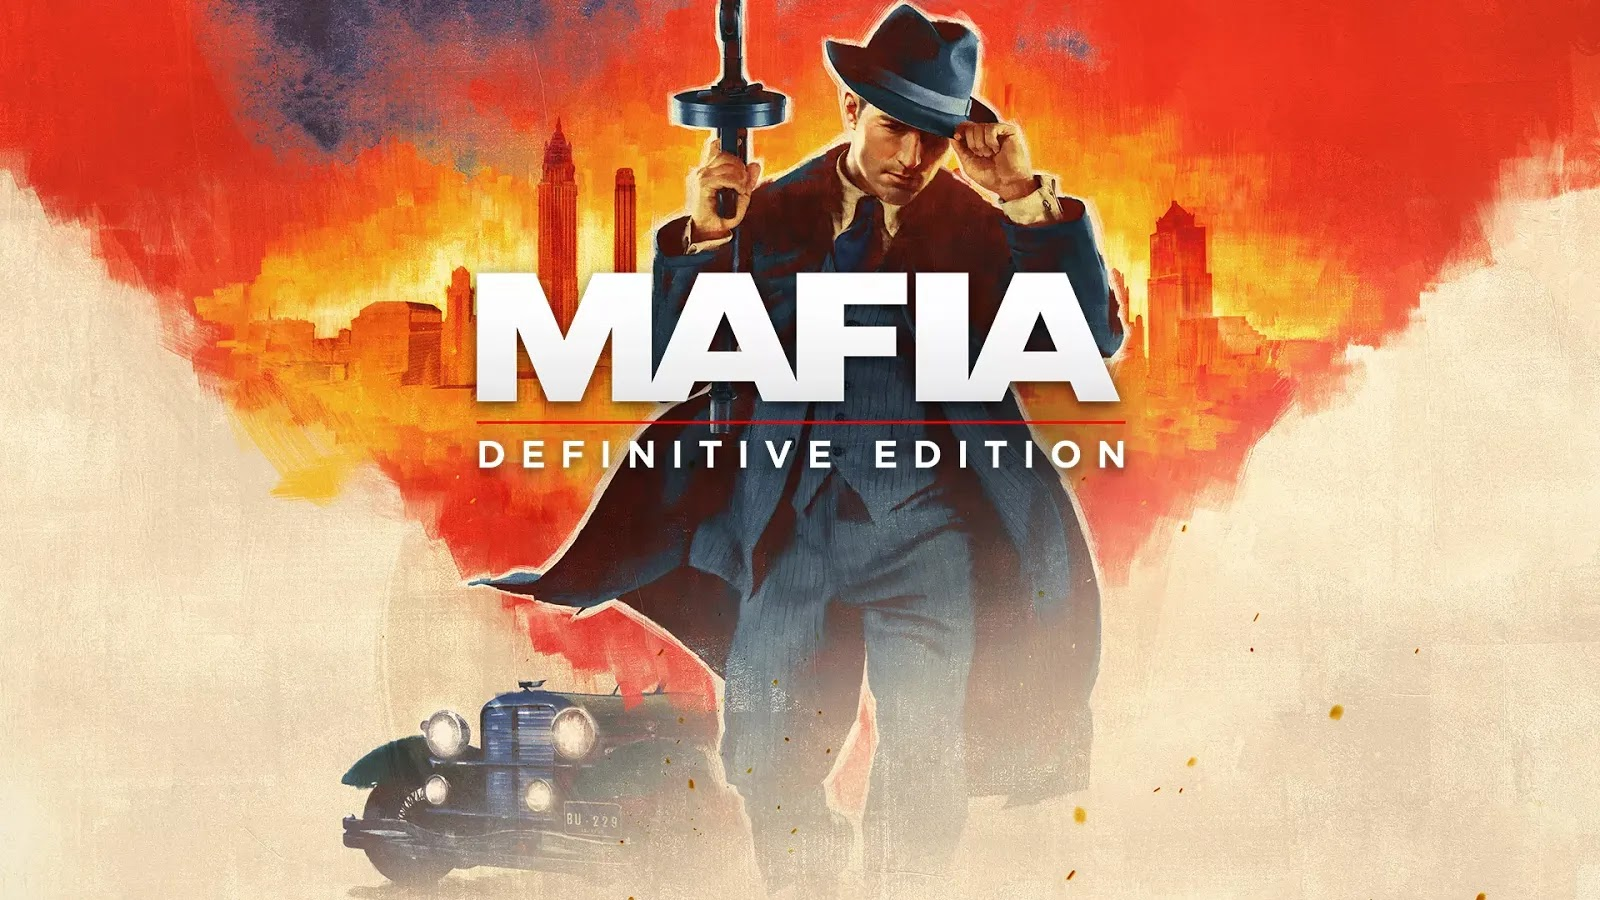 Check out the full, detailed review of Mafia: Definitive Editio